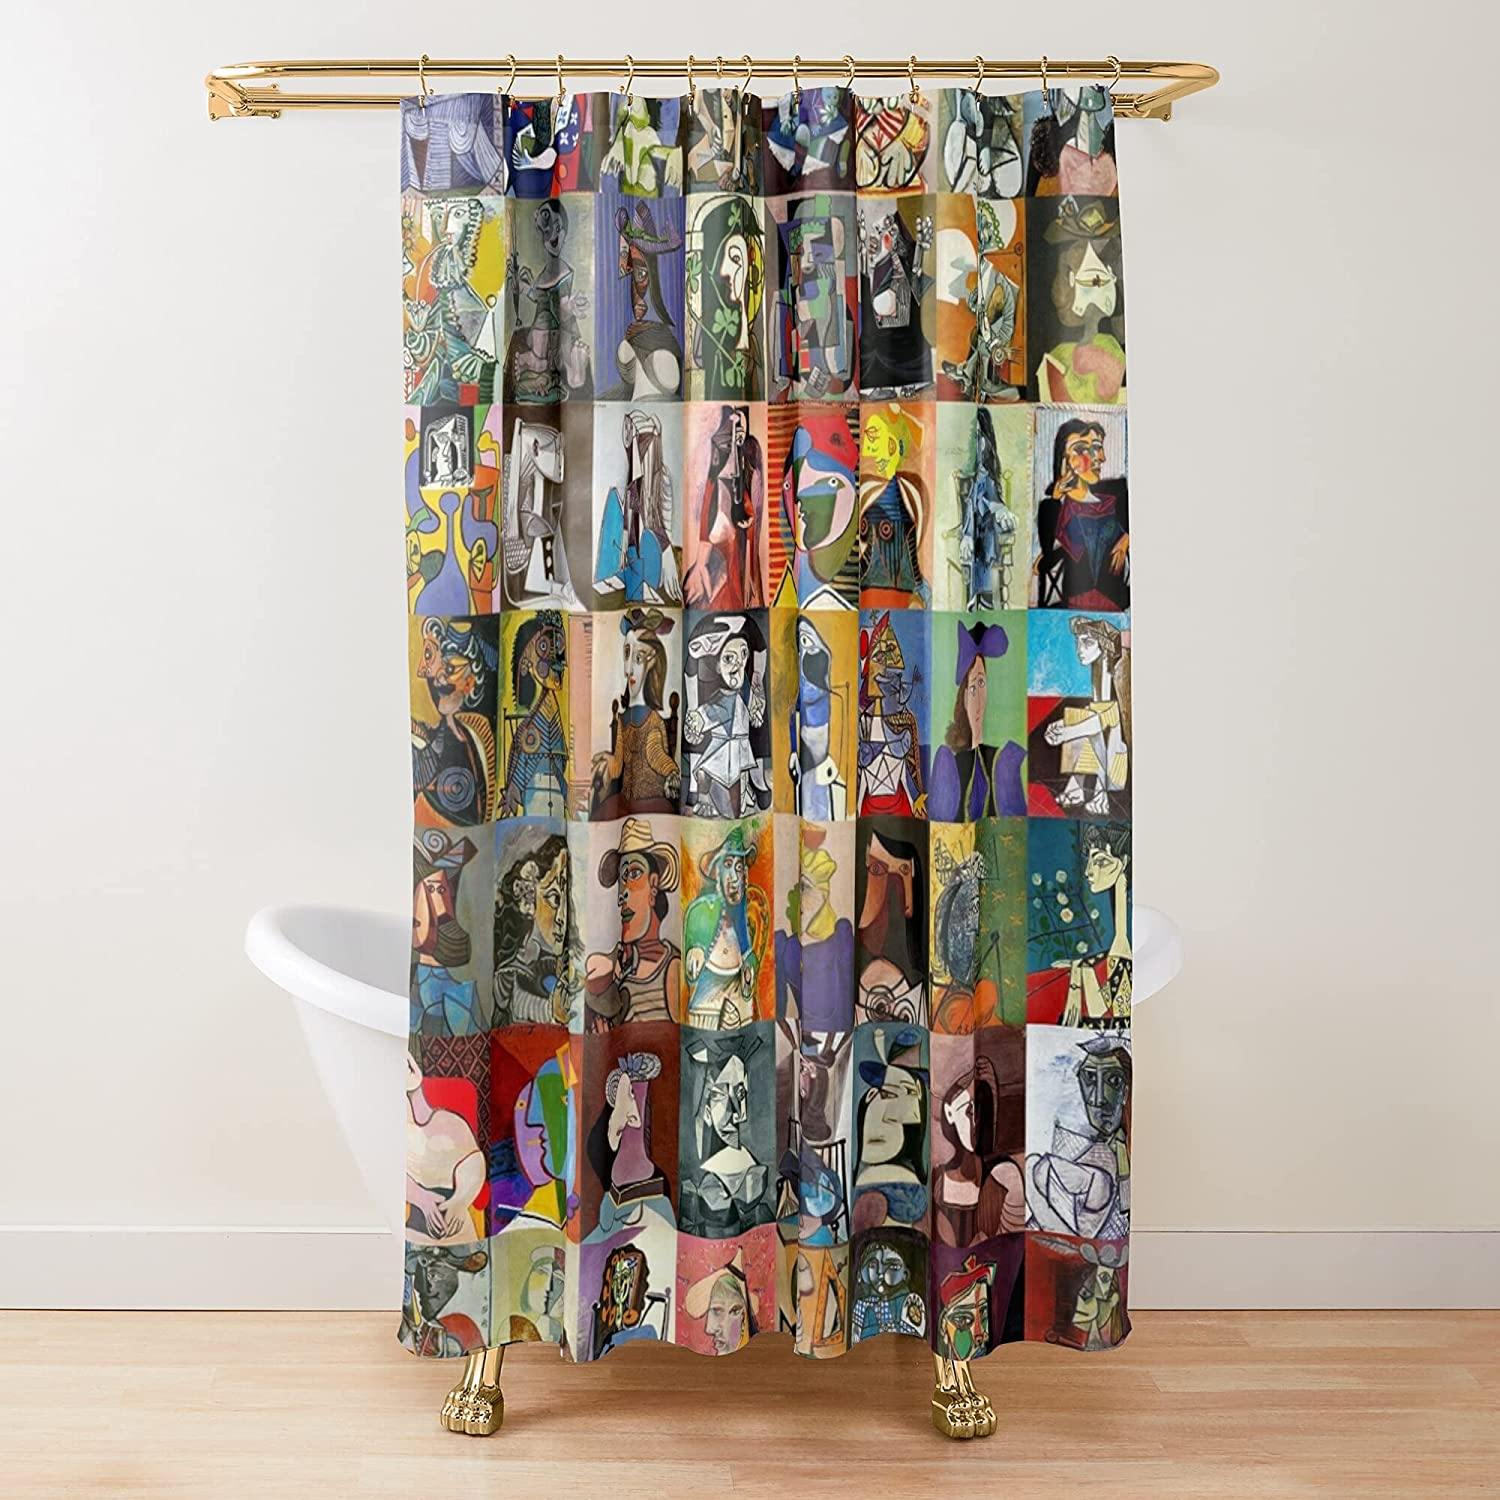 Picasso Faces Fabric Shower Genuine Curtains Bathroom Customize overseas Printed